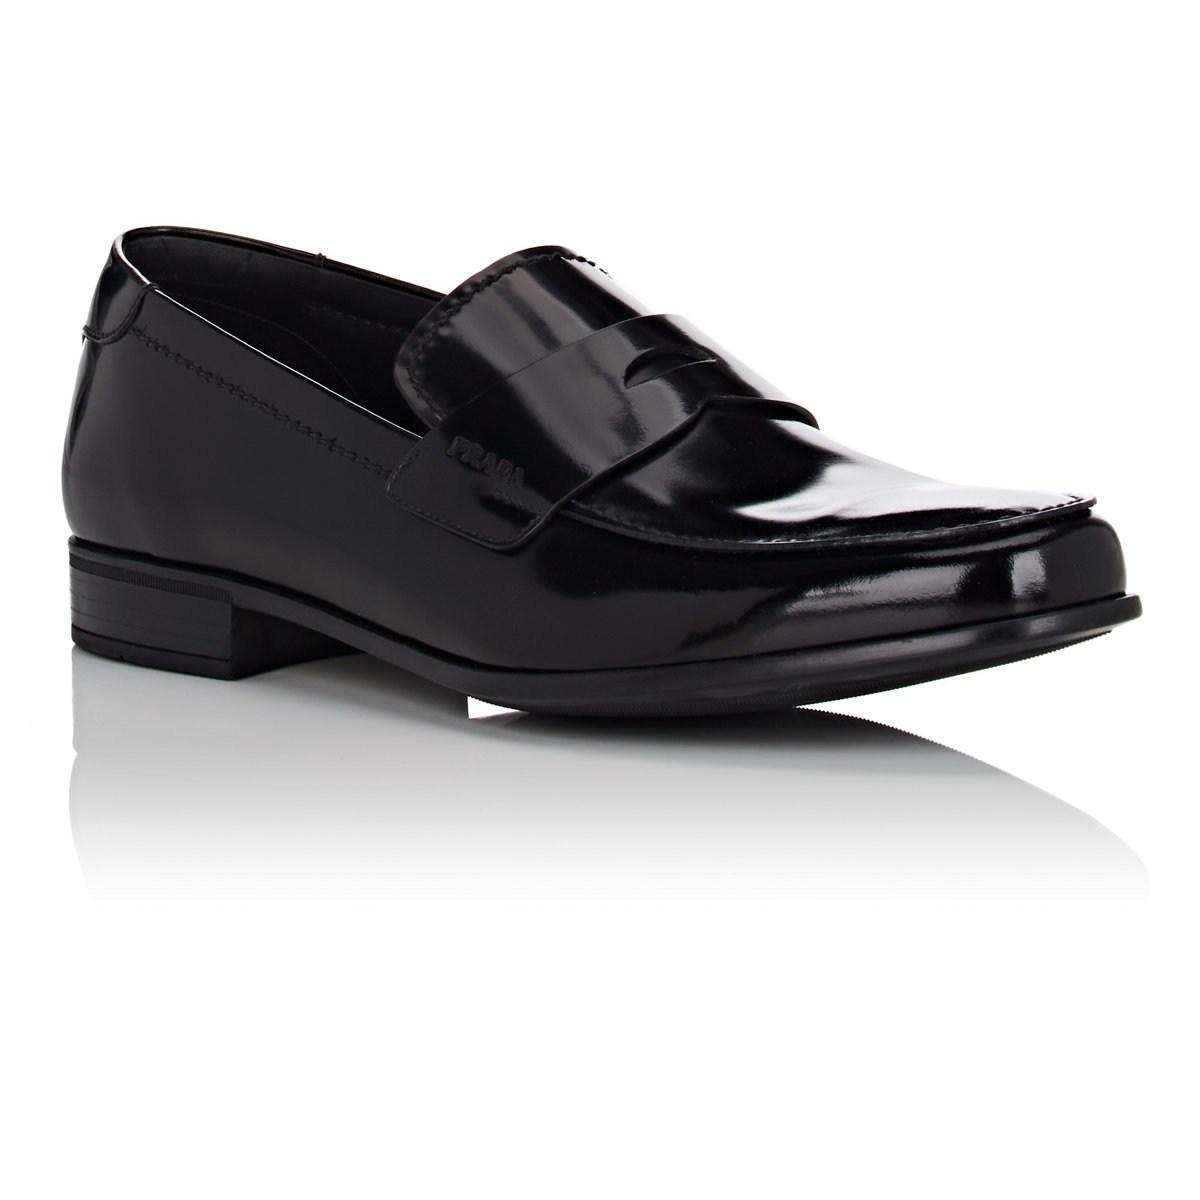 39dfaaf8a6f Prada Spazzolato Leather Penny Loafers in Black for Men - Save ...